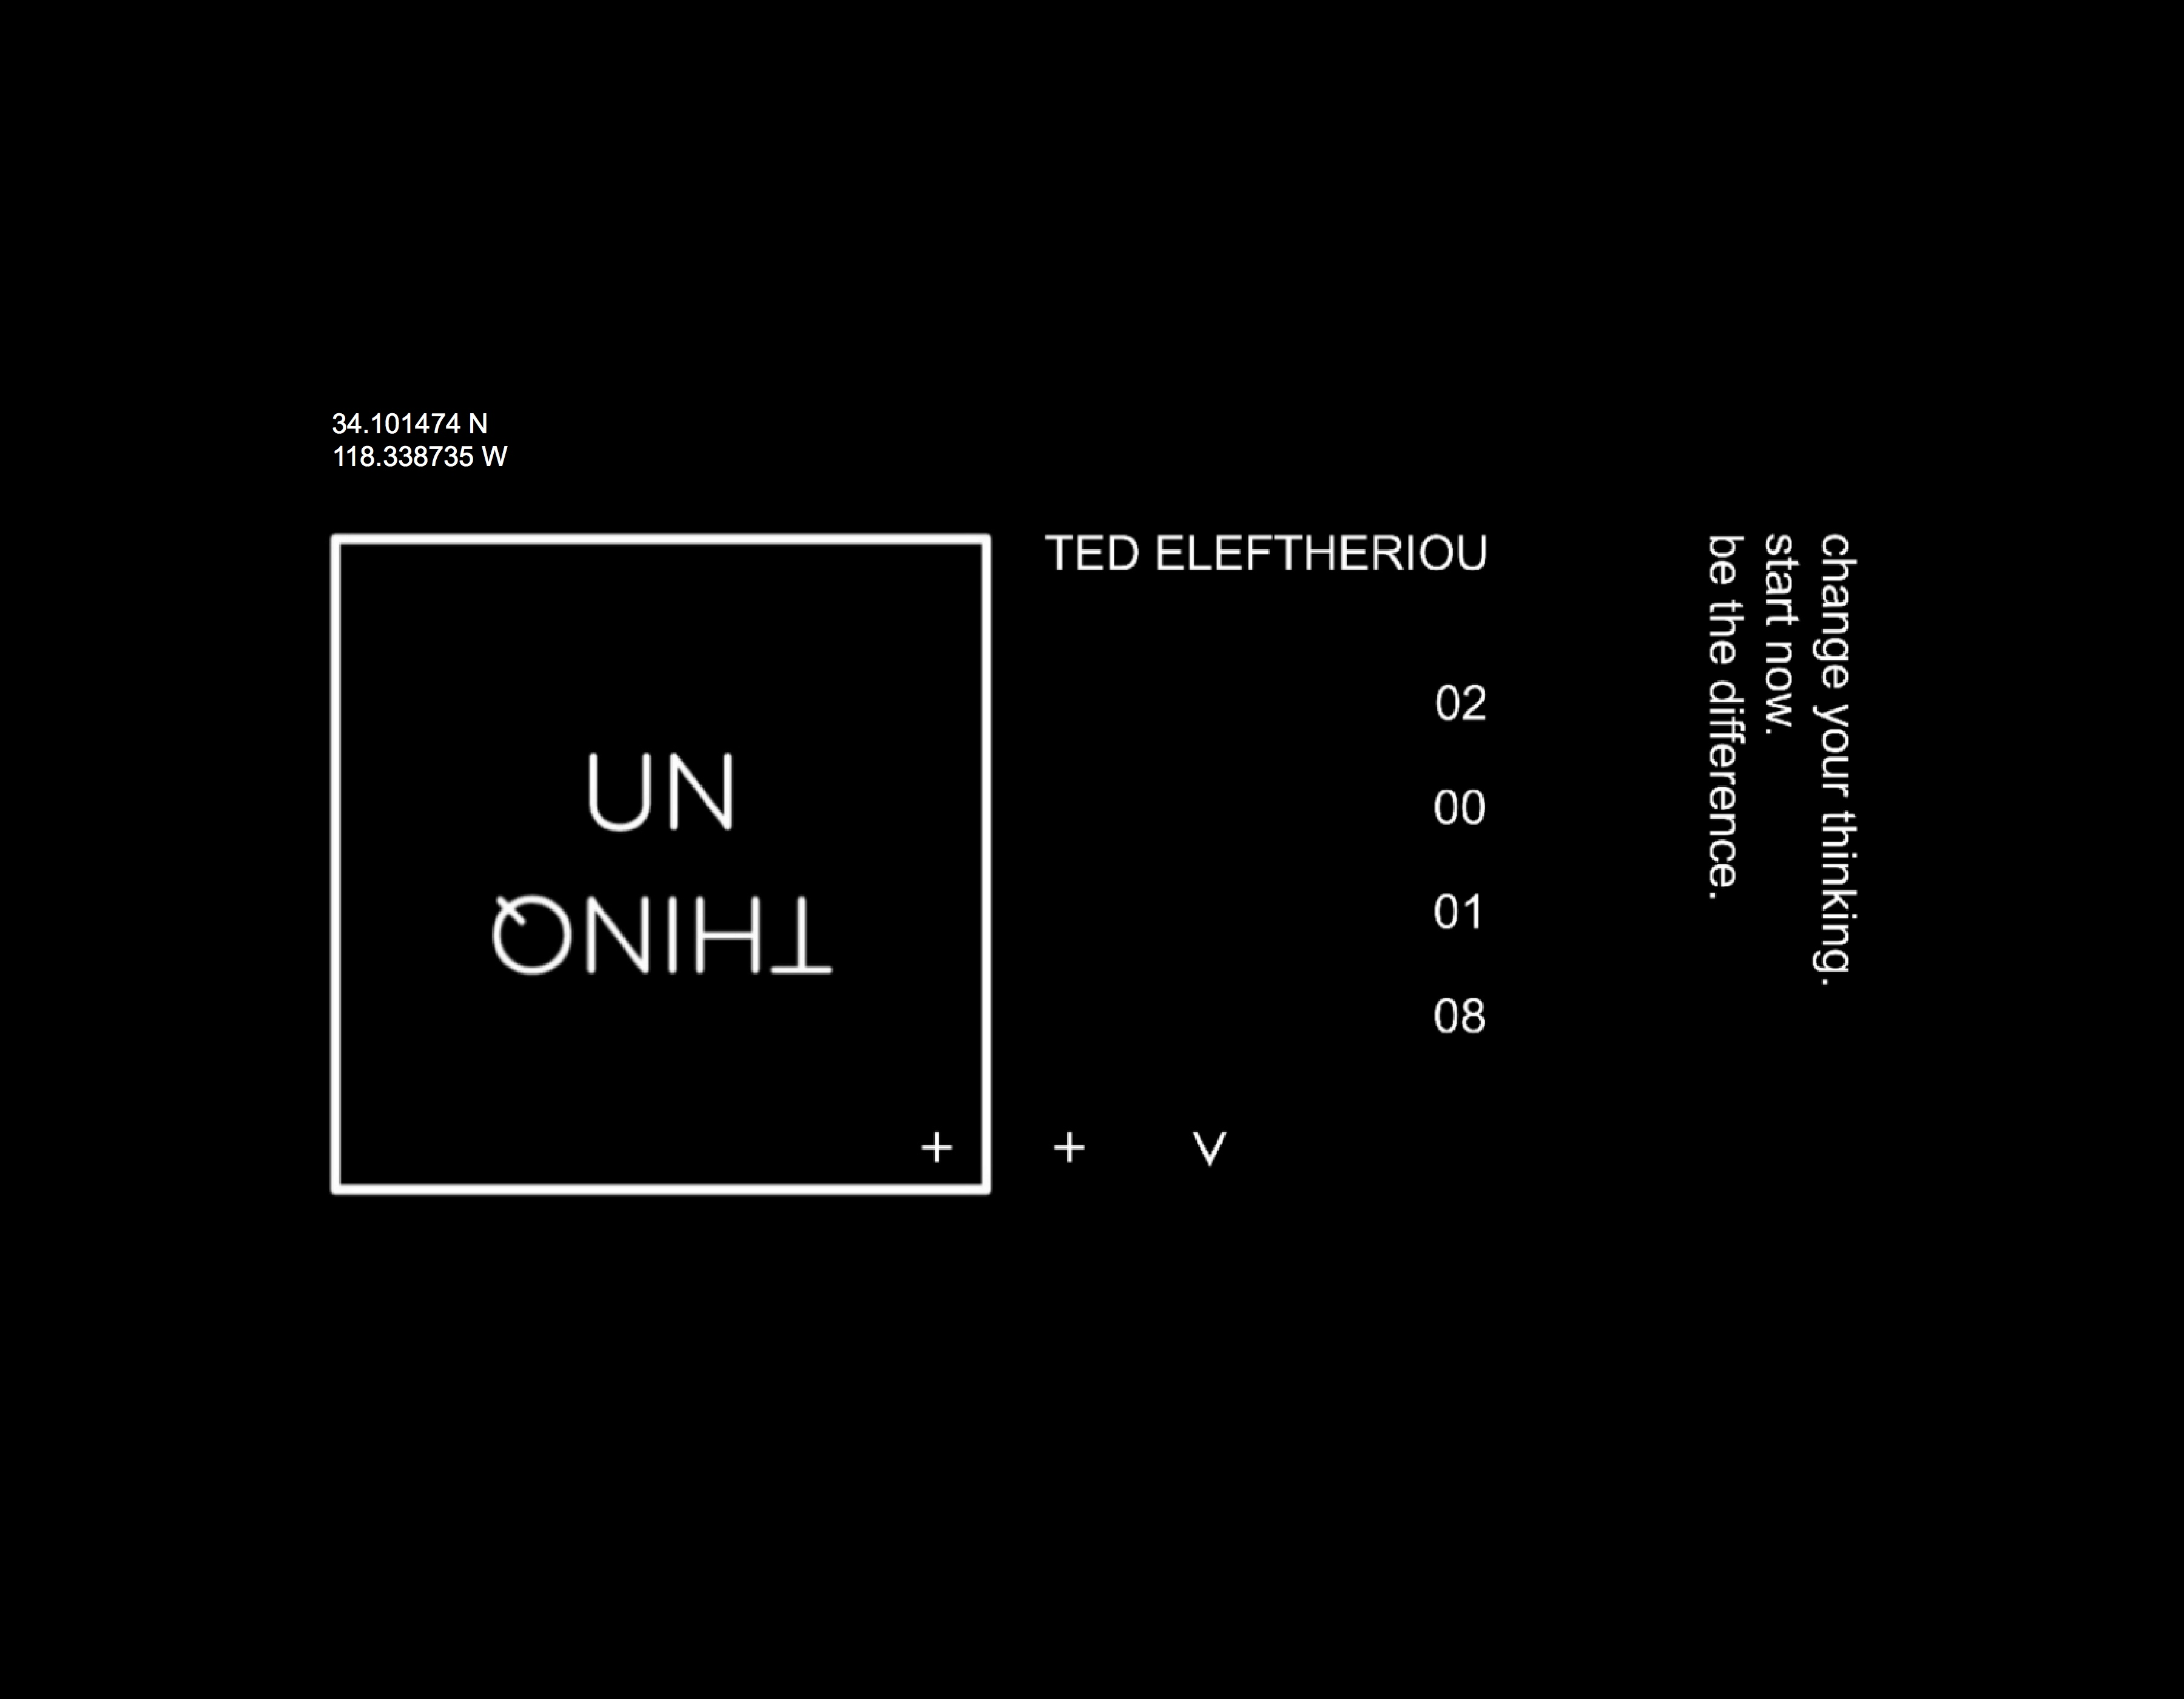 ted eleftheriou - UnThinQ